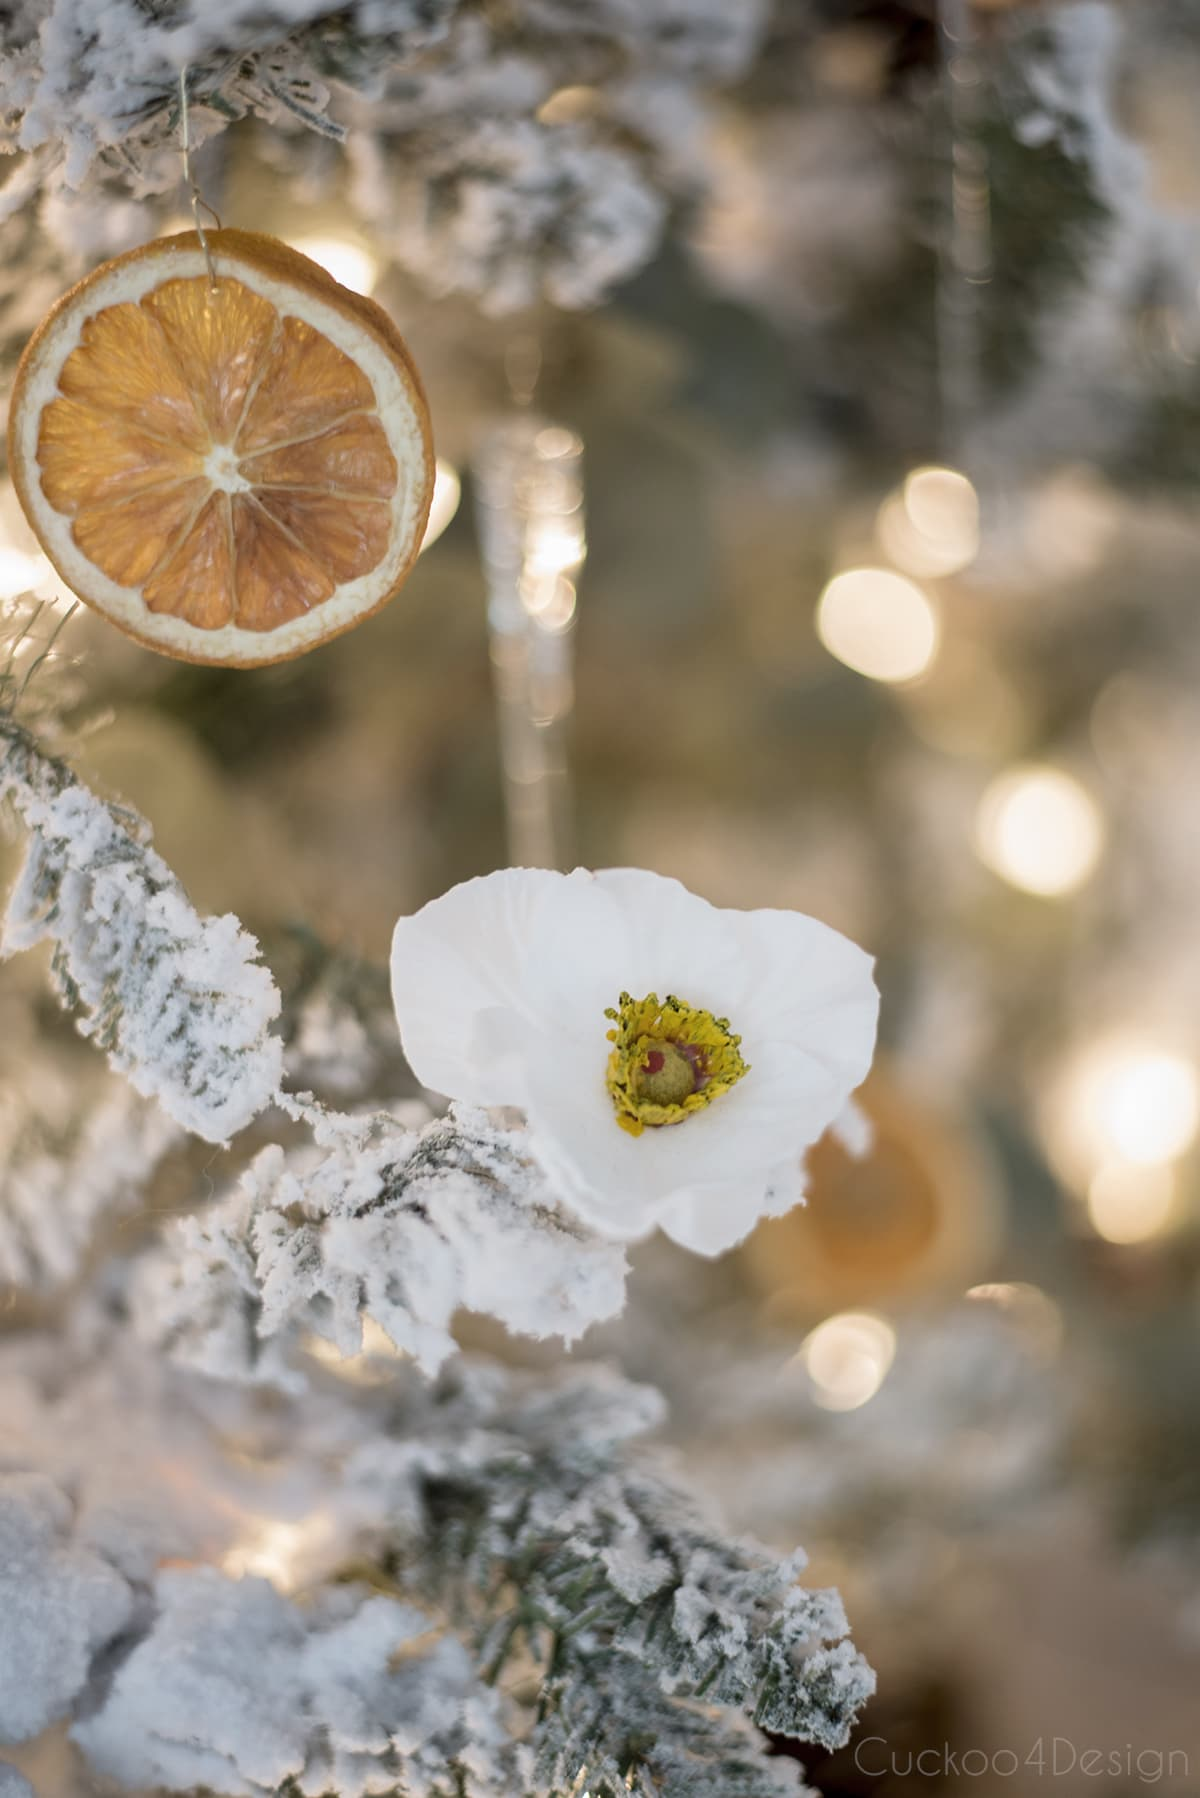 German Christmas rose and dried orange slices in German Christmas tree